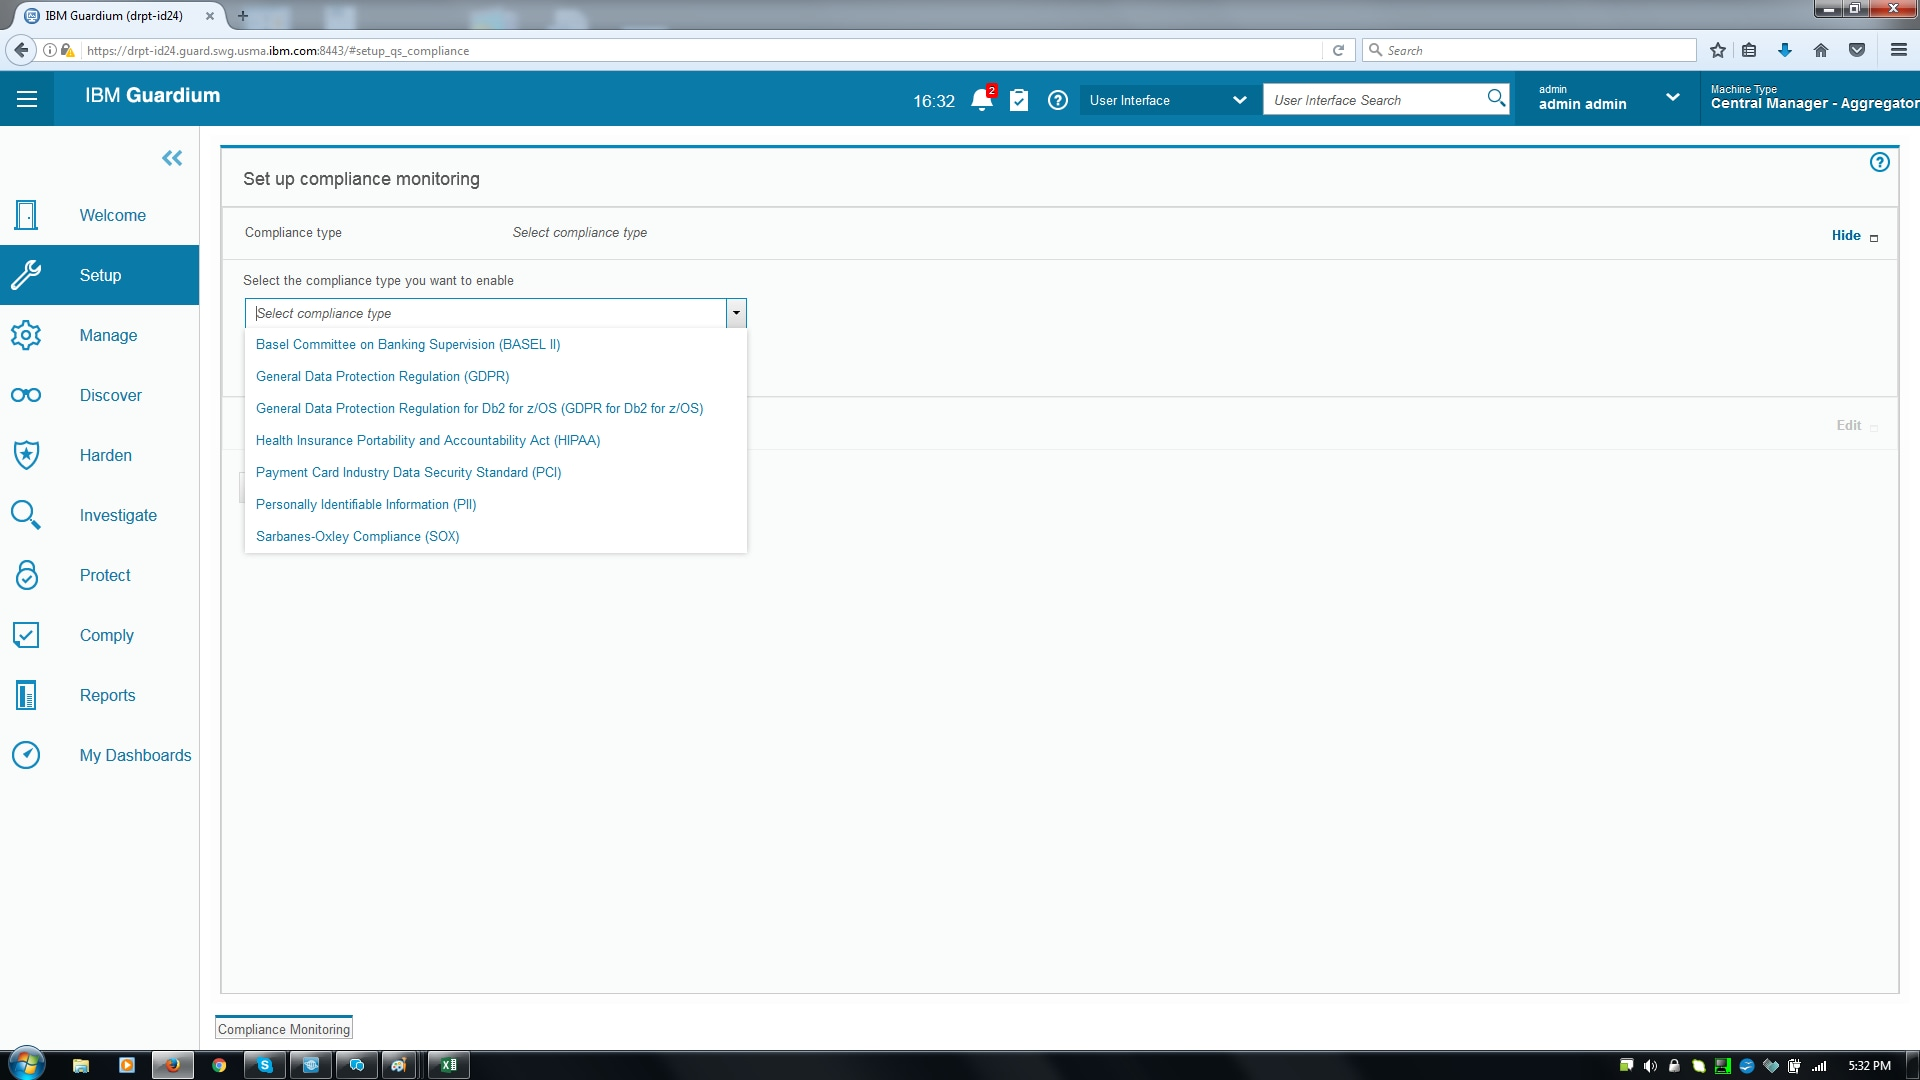 Screen shot of compliance monitoring setup